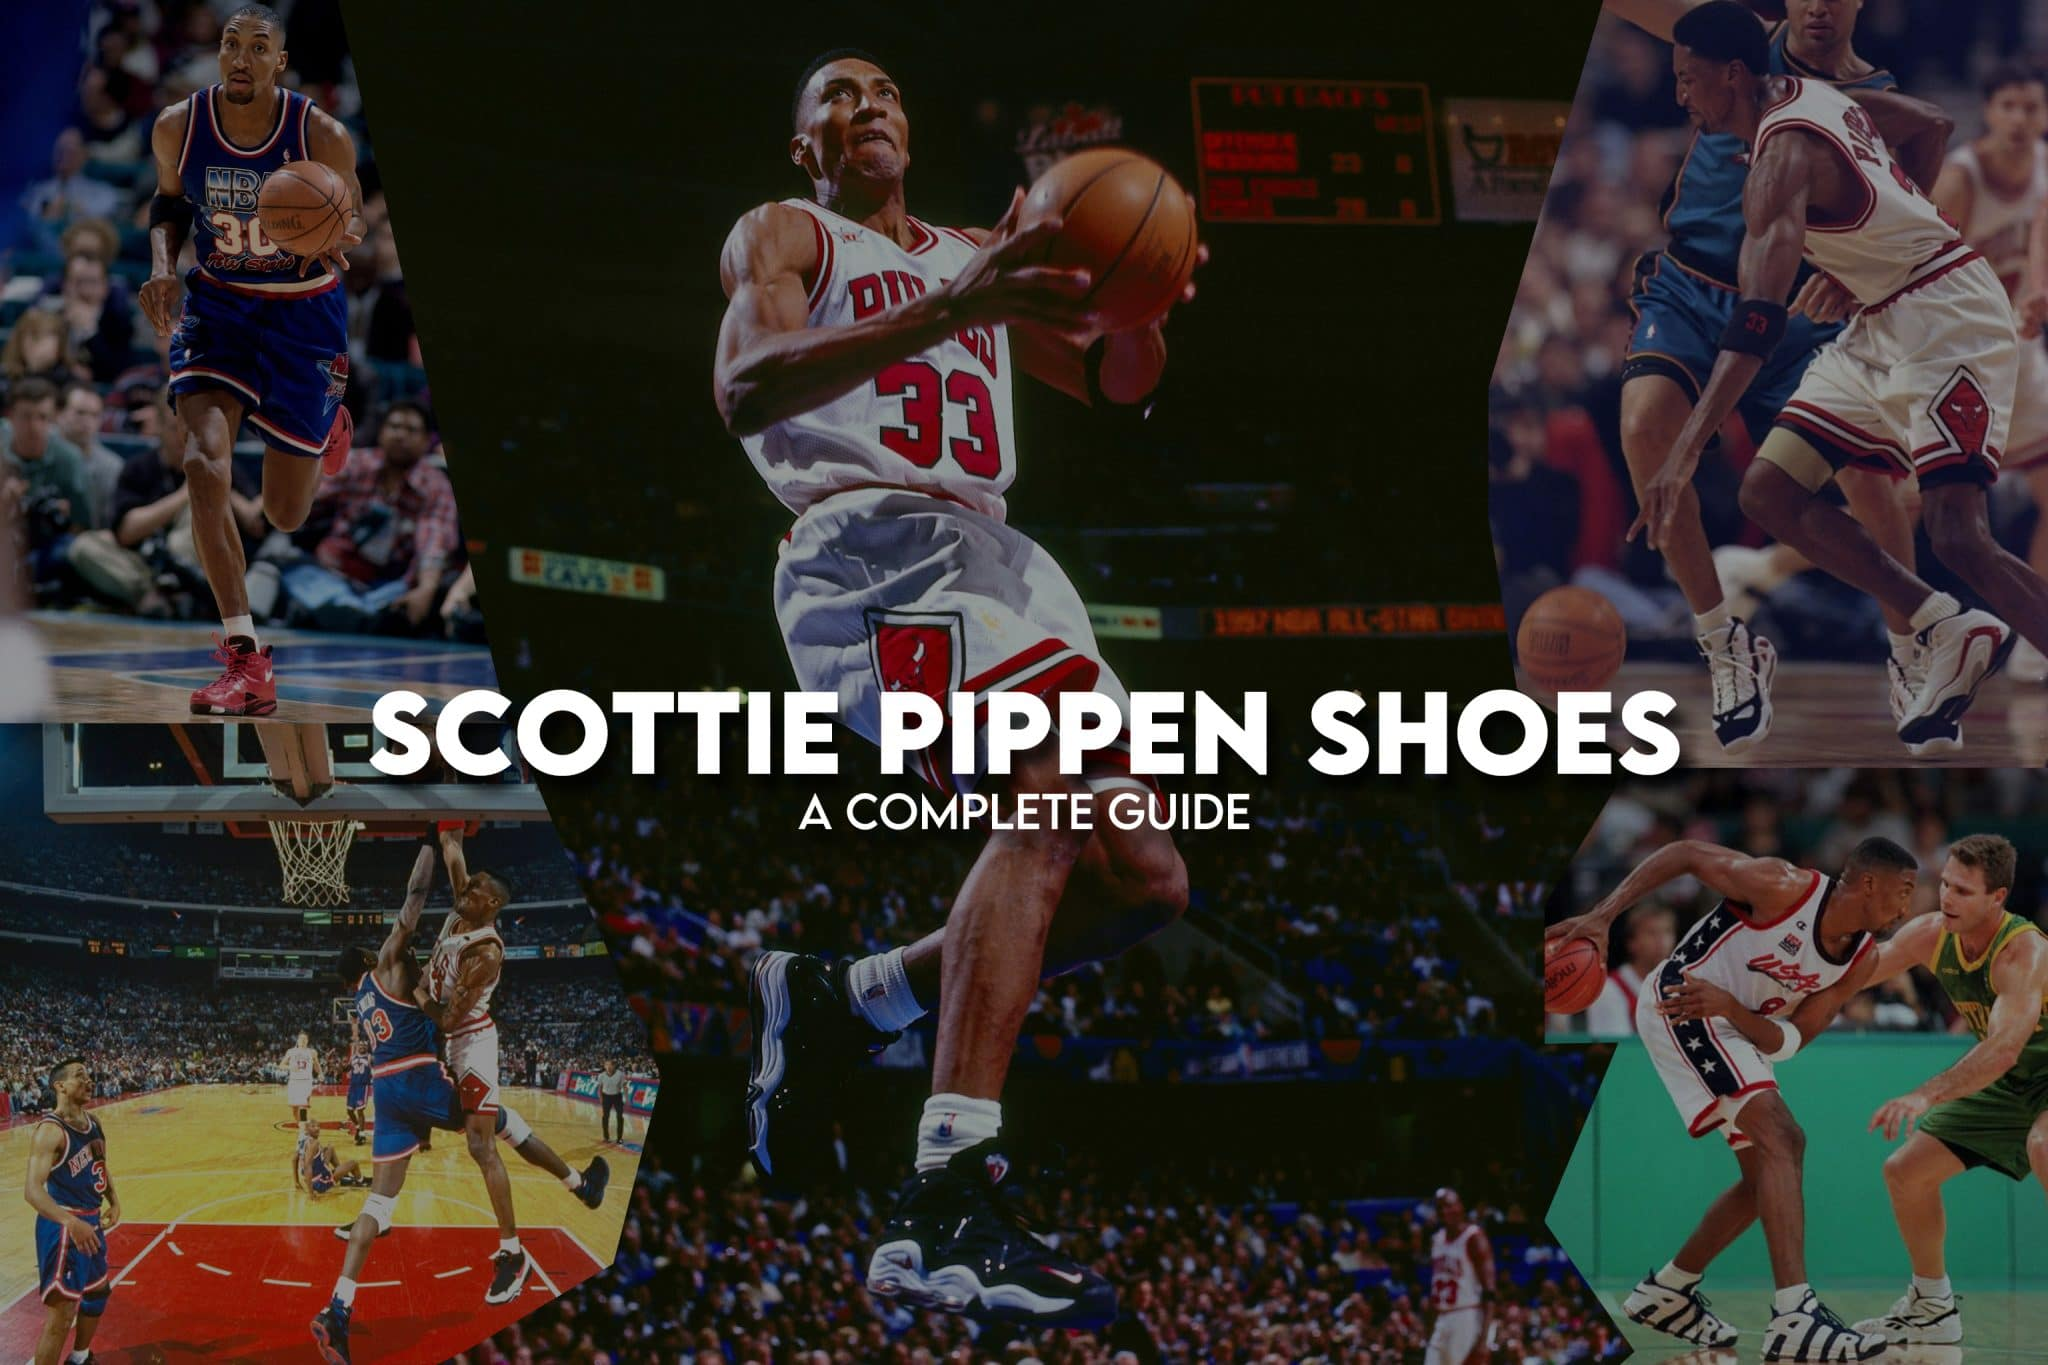 Scottie Pippen Shoes